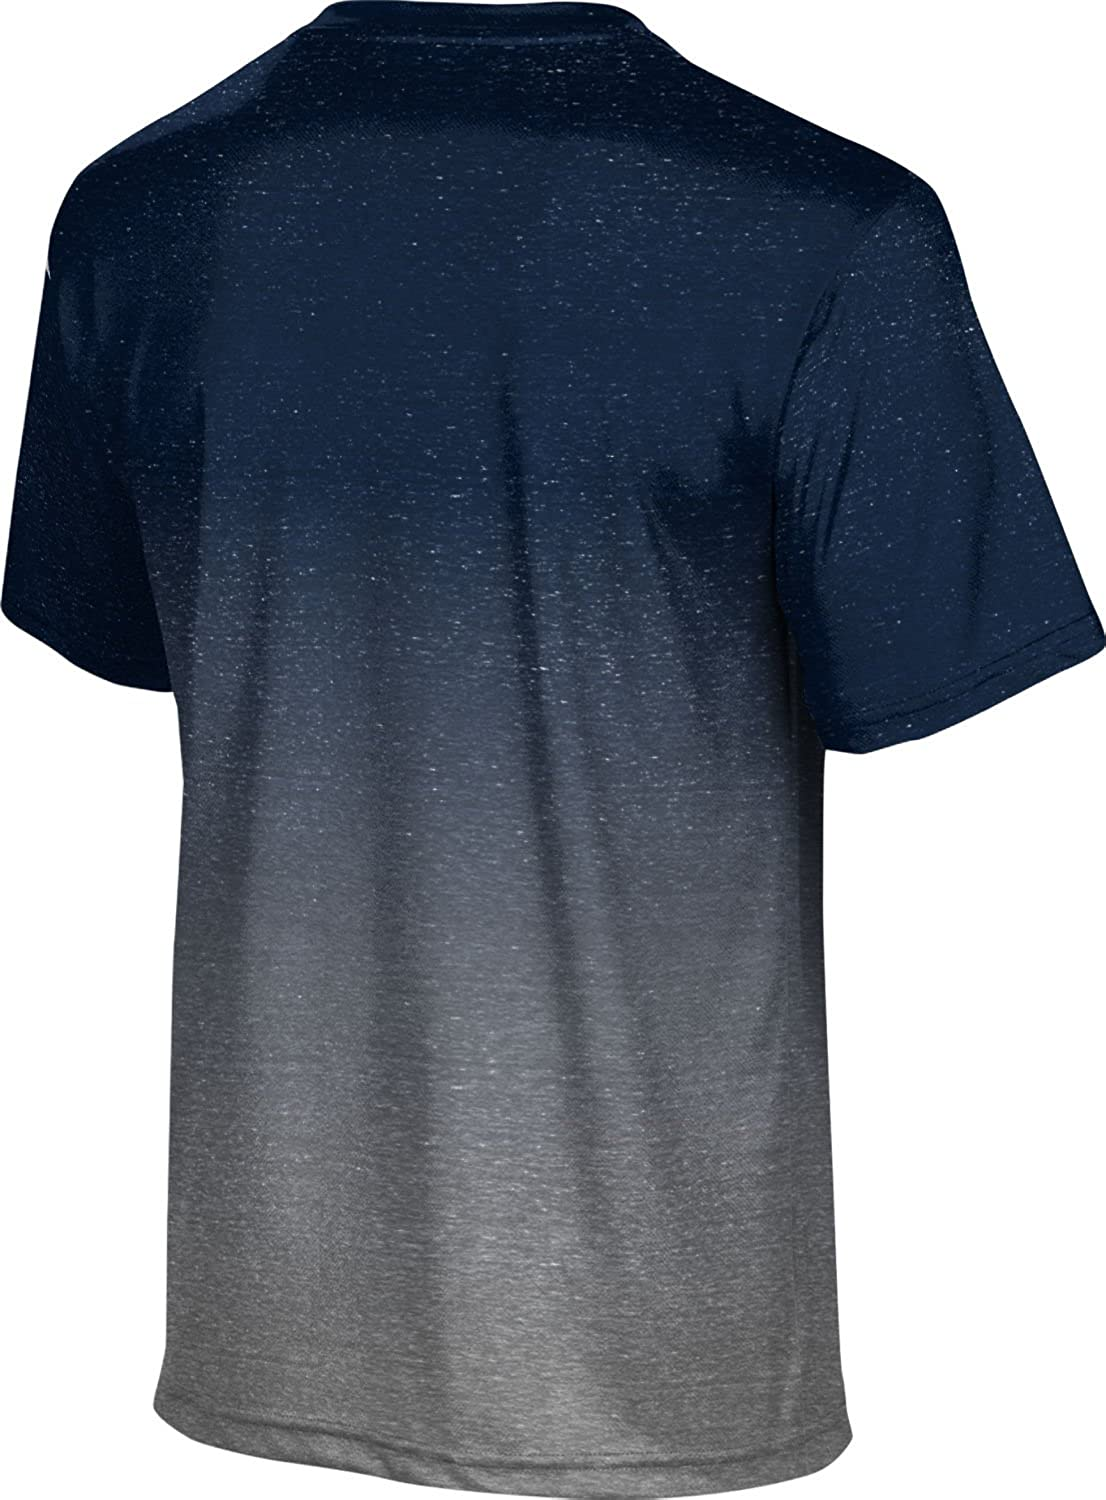 ProSphere University of New Hampshire Boys Performance T-Shirt Gradient